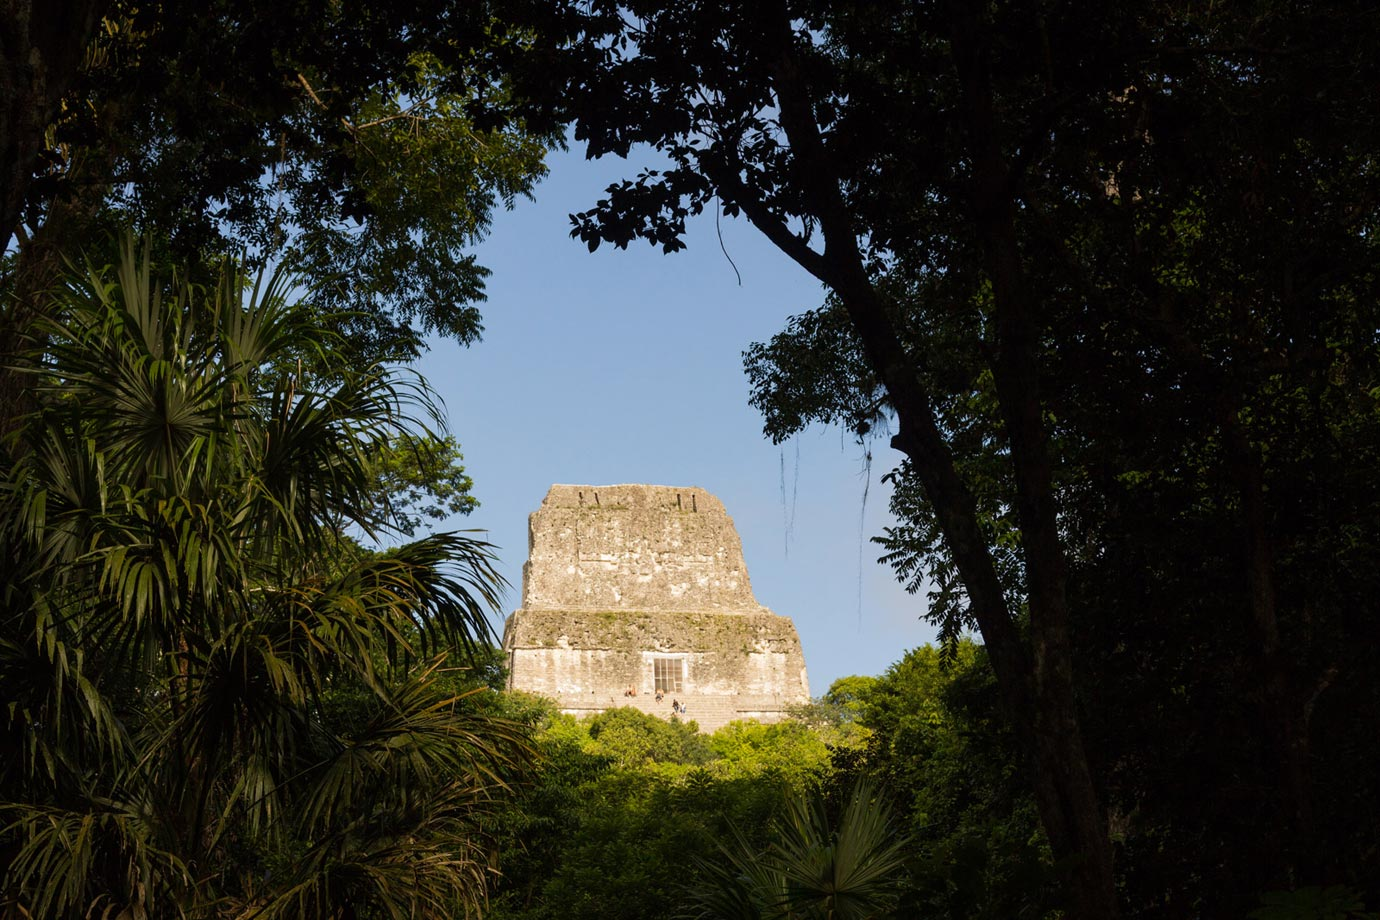 In 1979, Tikal National Park was declared a UNESCO World Heritage site, and walking around it is extremely easy to understand why